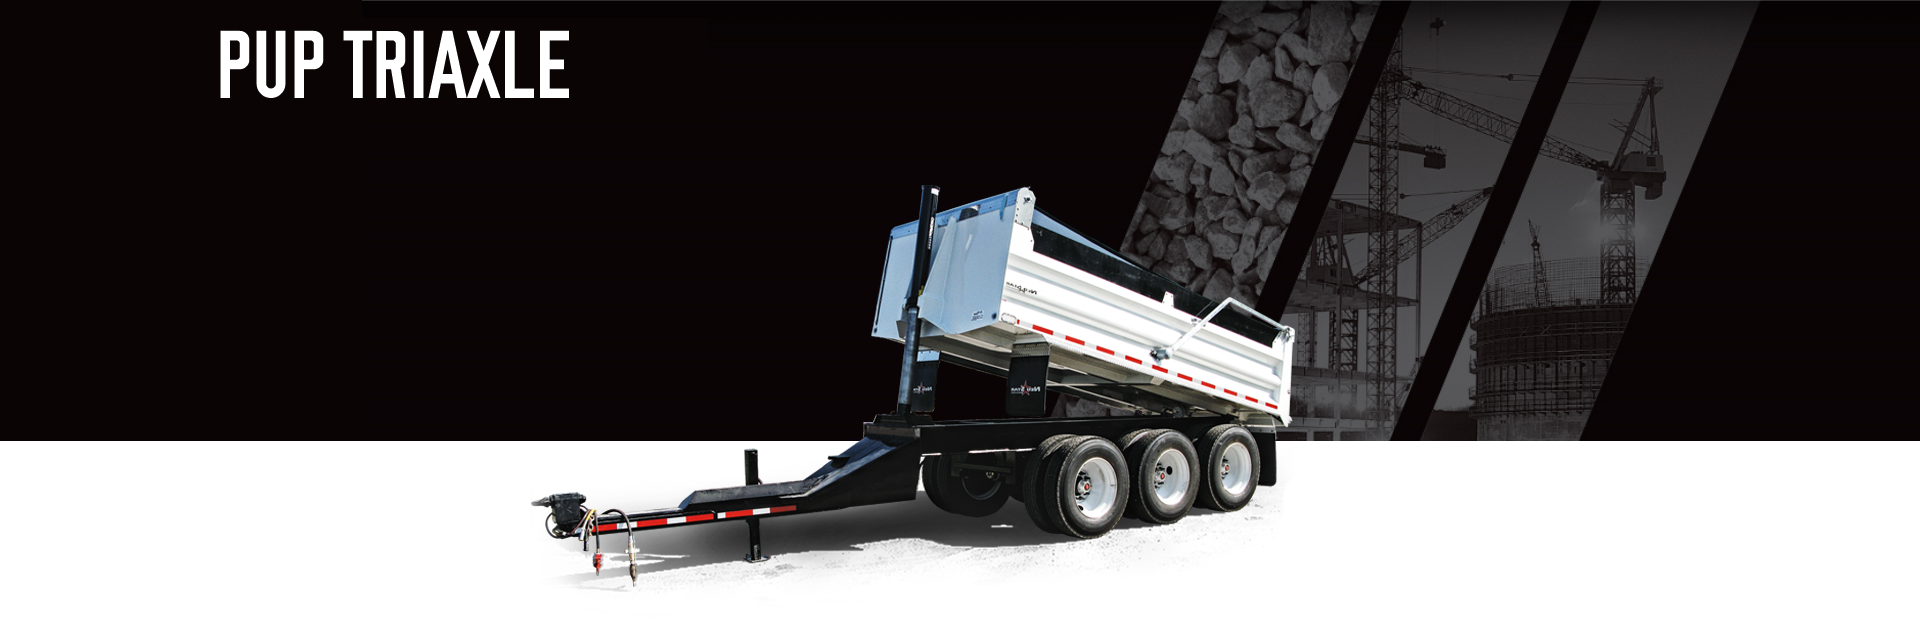 NeuStar_Pup_Triaxle_Trailer_Front